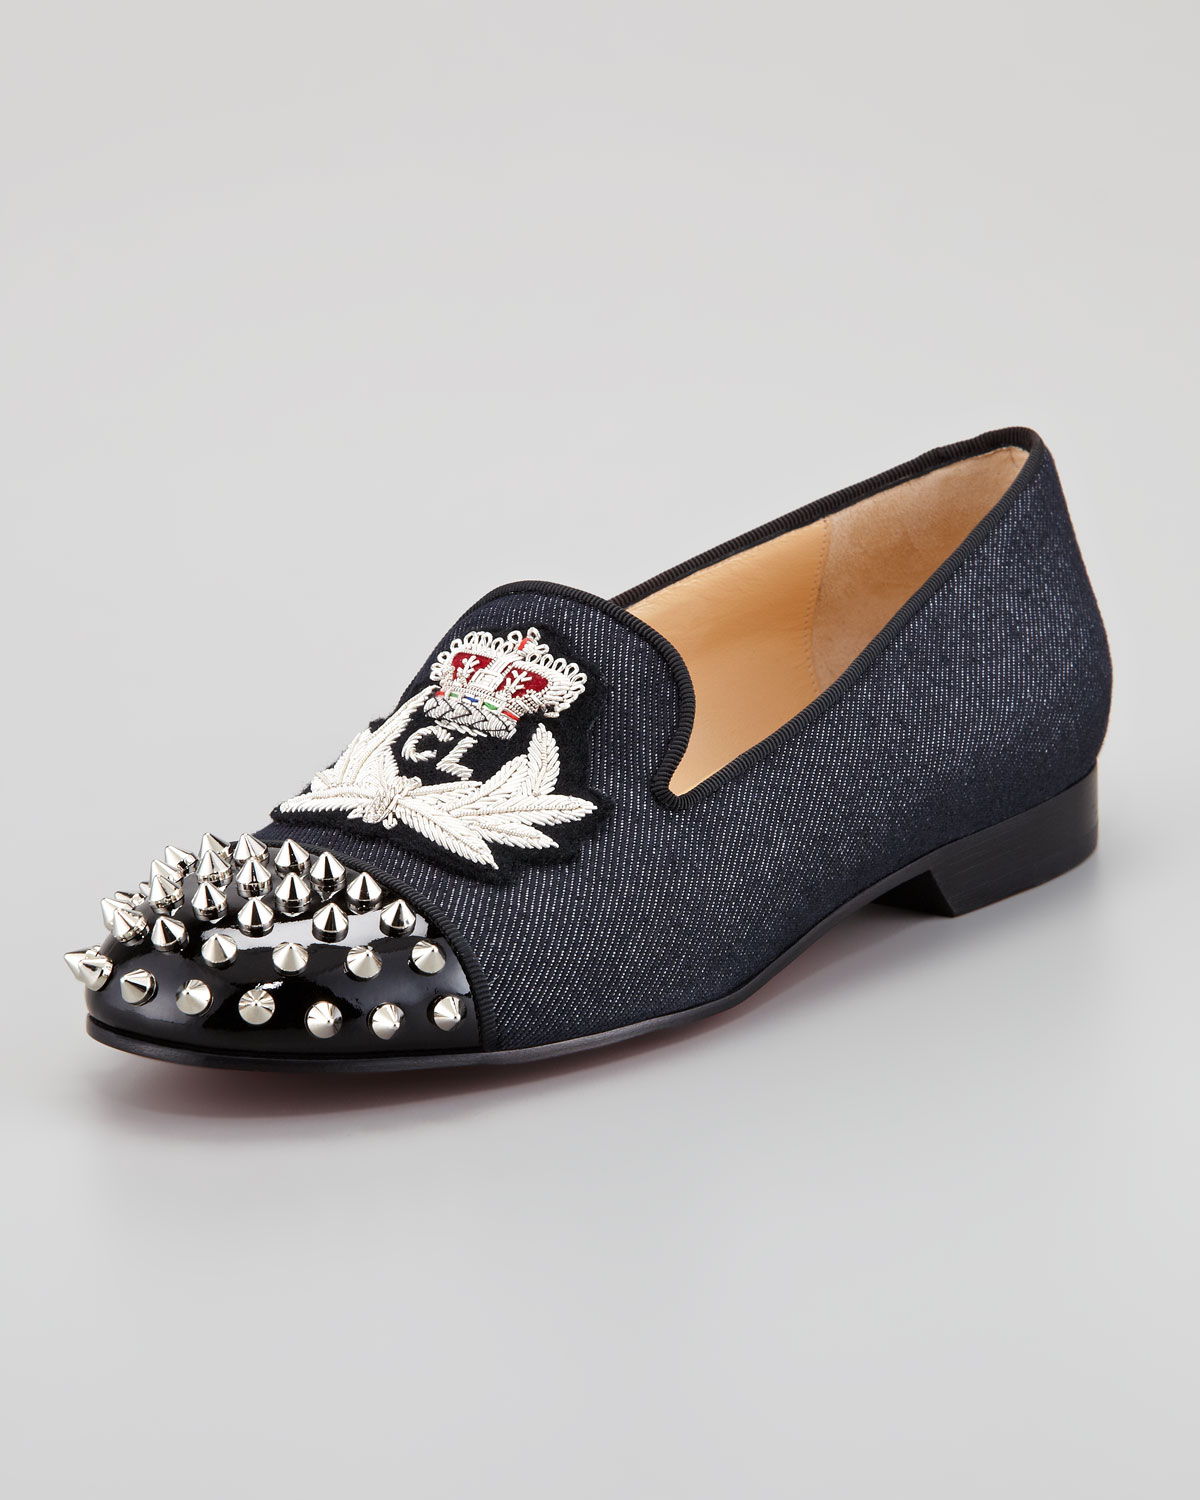 Christian louboutin Intern Spiked Captoe Denim Red Sole Loafer in ...